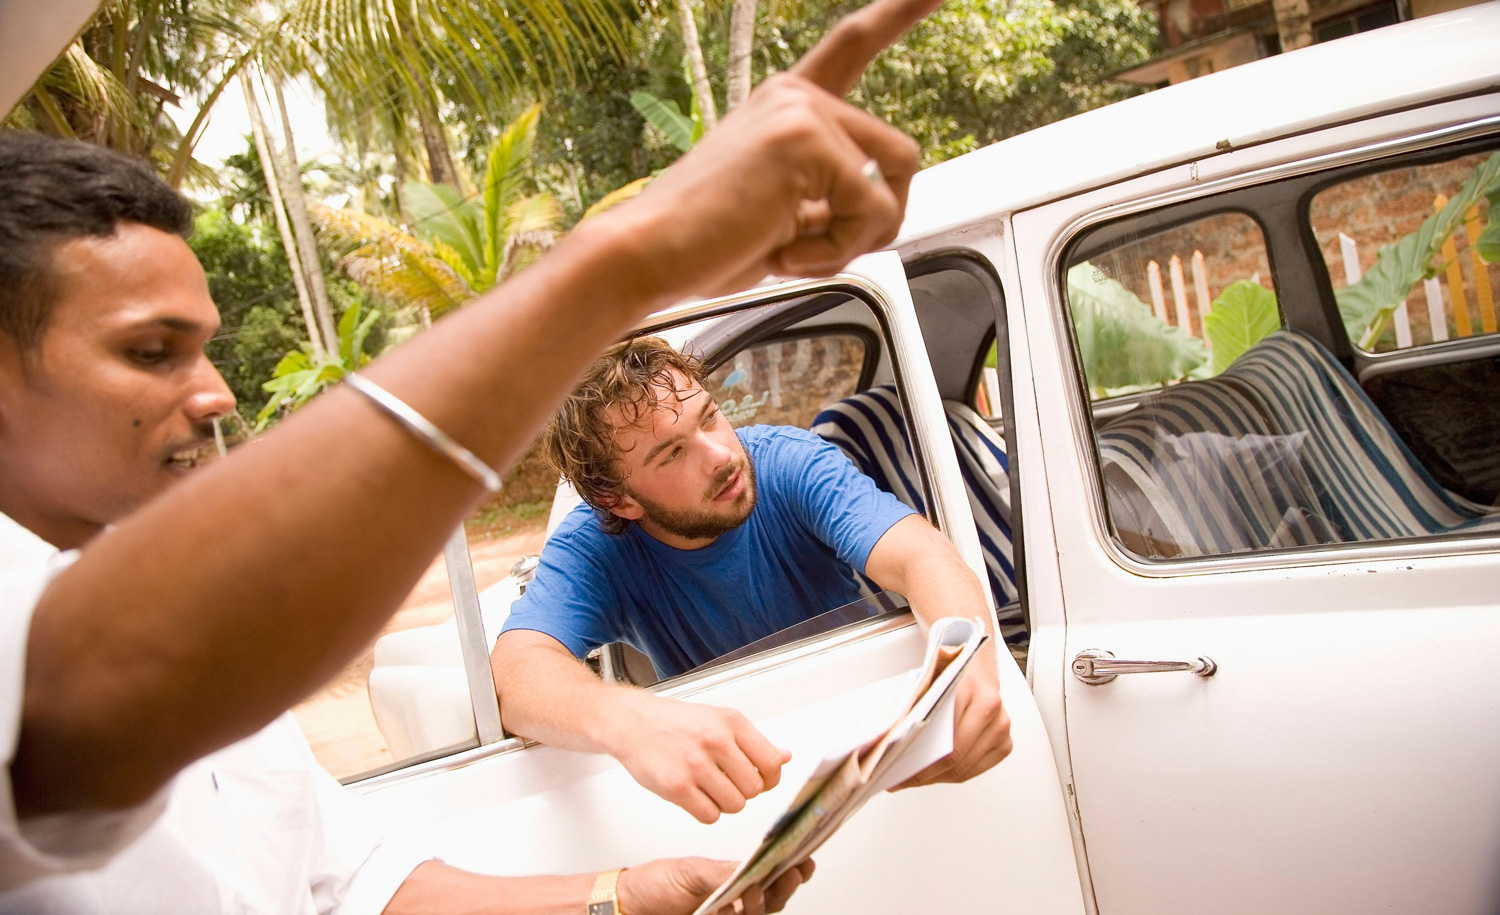 A taxi driver pointing out directions to a backpacker. Design Pics Inc/Alamy Stock Photo.